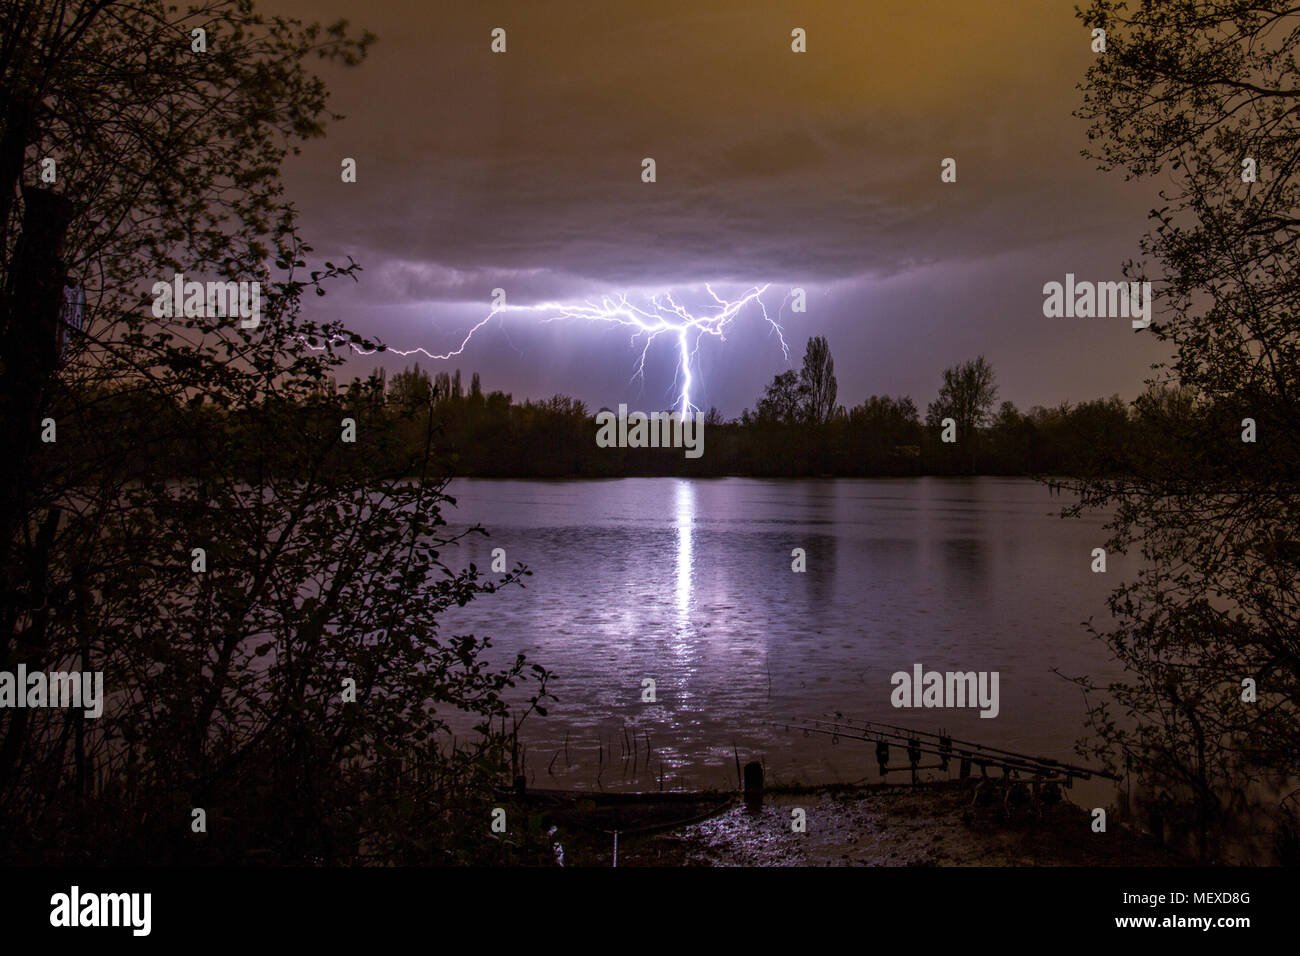 Lightning bolt as summer storm passes over carp fishing lake, Marlow, England, United Kingdom Stock Photo